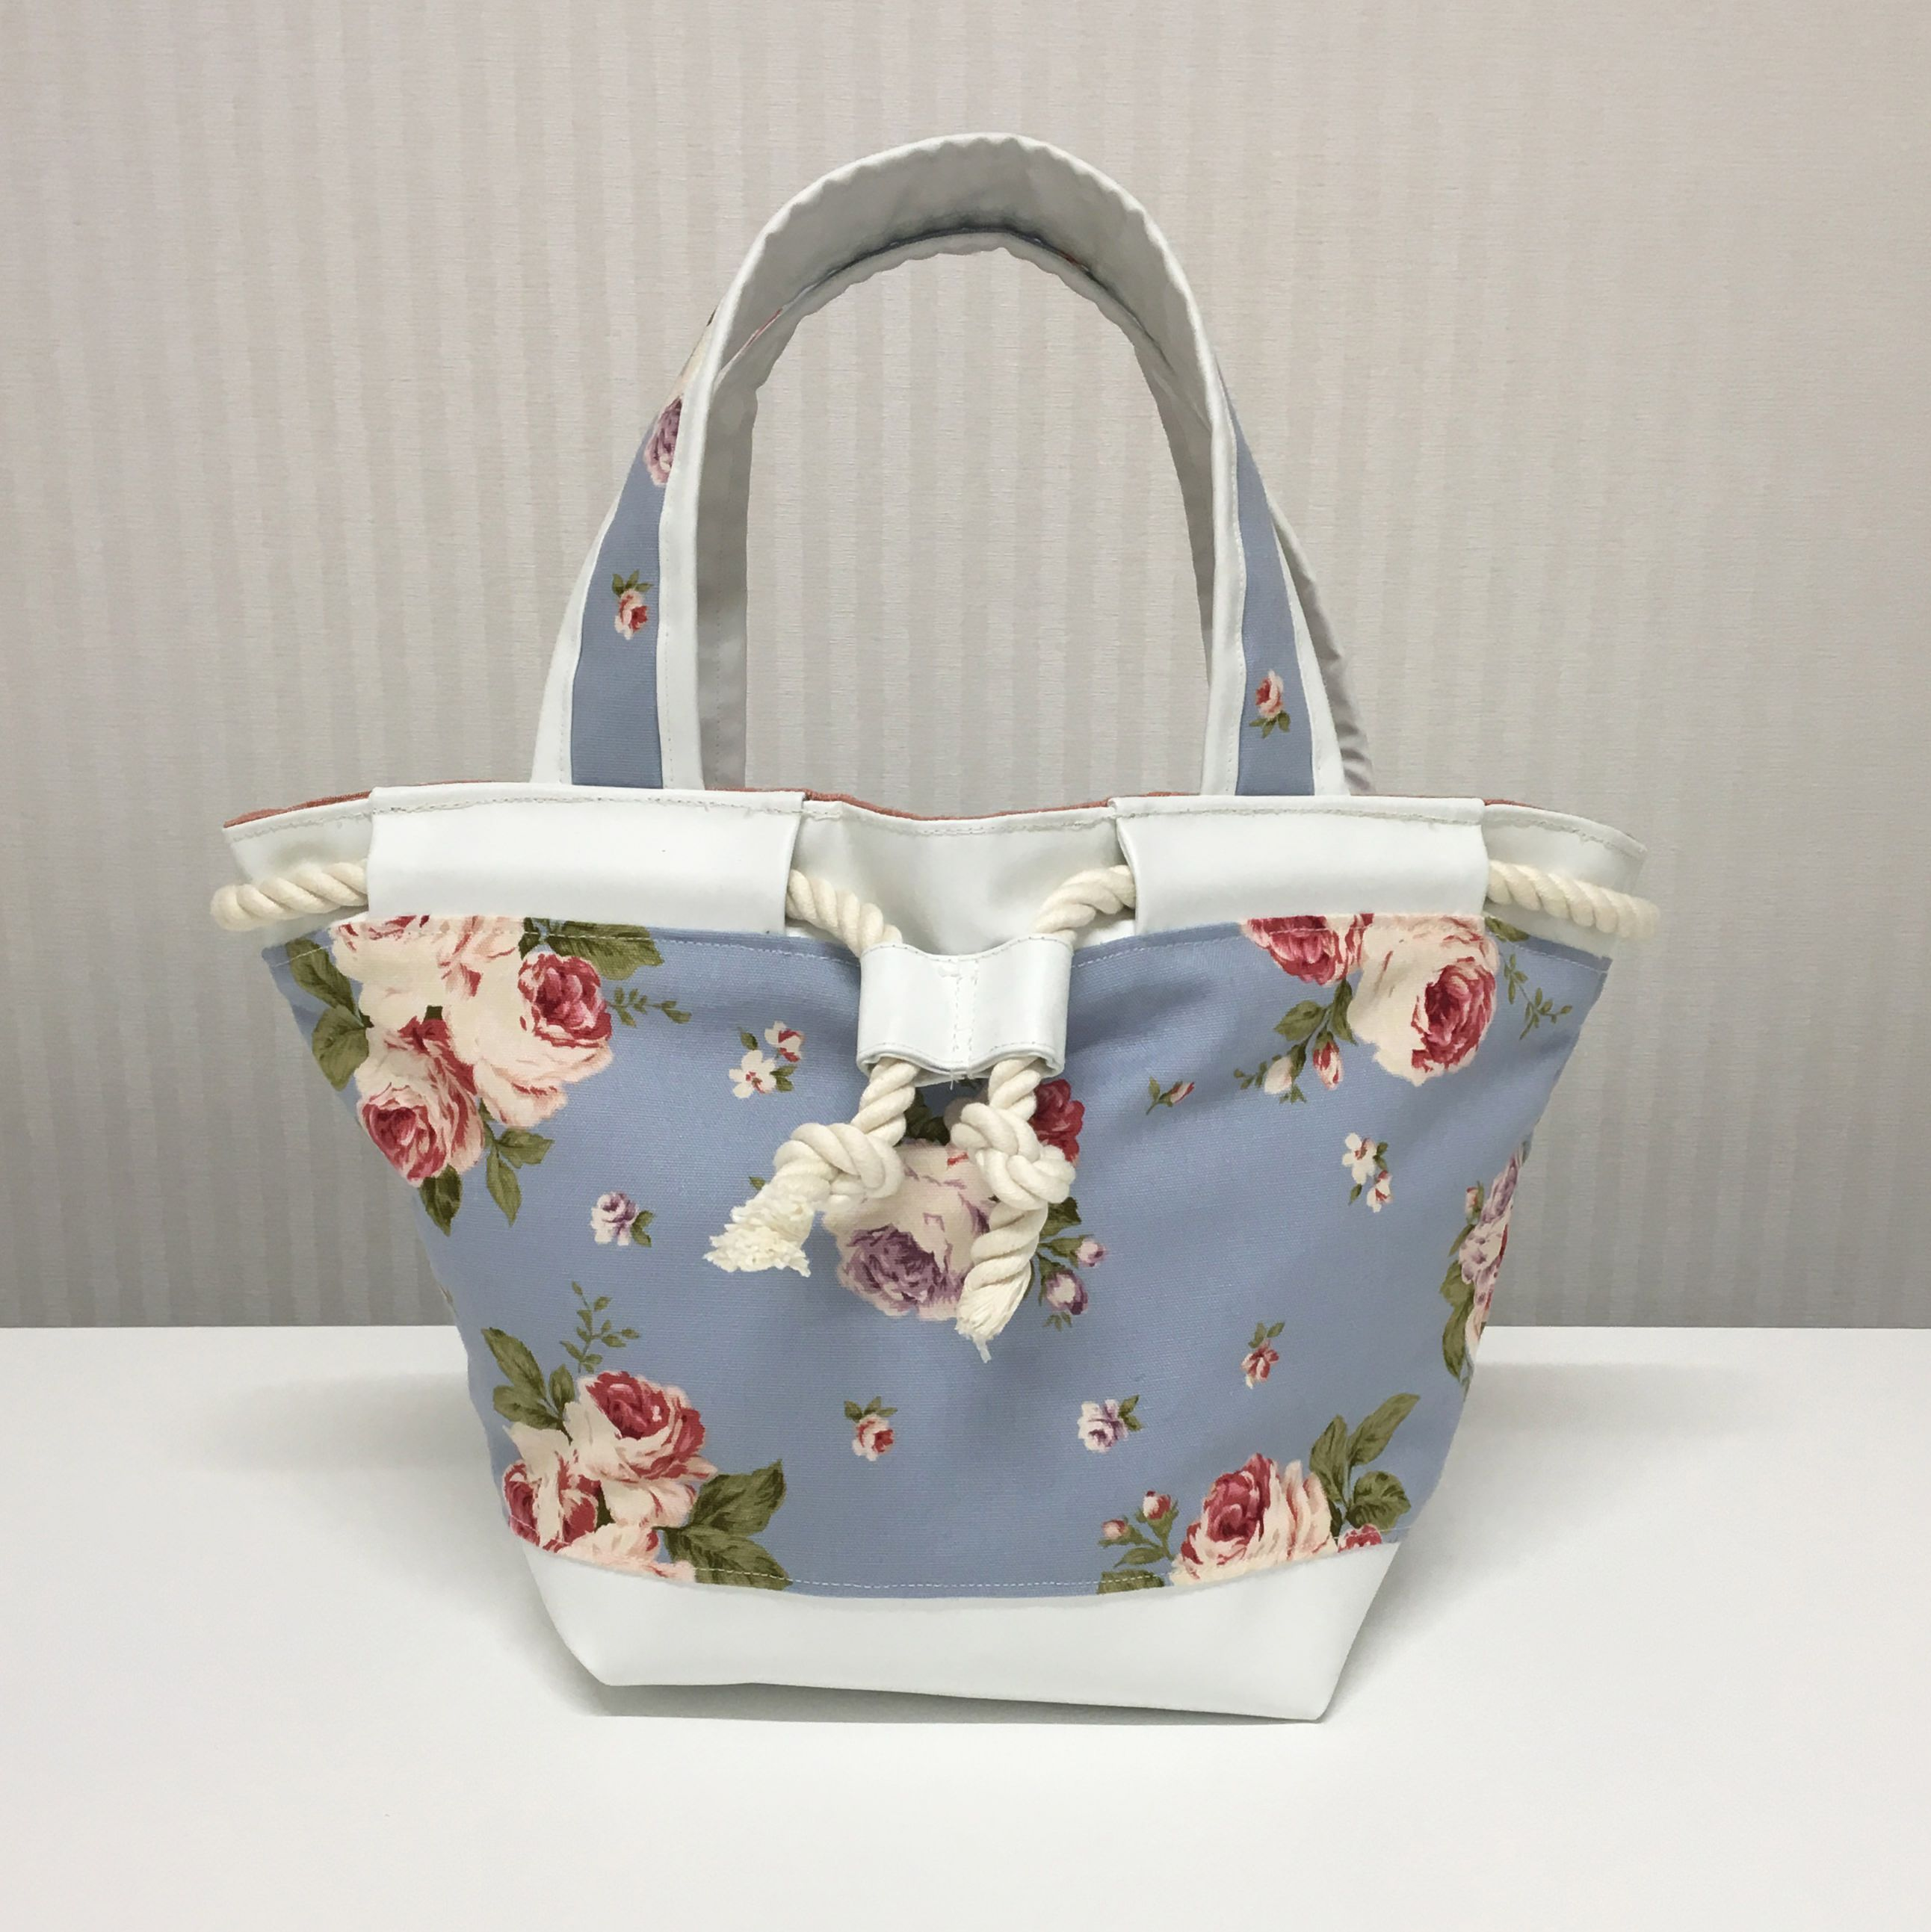 A tote bag featuring synthetic leather. Arranging coloring and material suited to girly marine style. 合皮を使ったトートバッグ。ガーリーマリンスタイルをテーマに配色と素材にこだわりました。 #bag #leather #Walkingfoot #sewing #handmade #JAGUAR